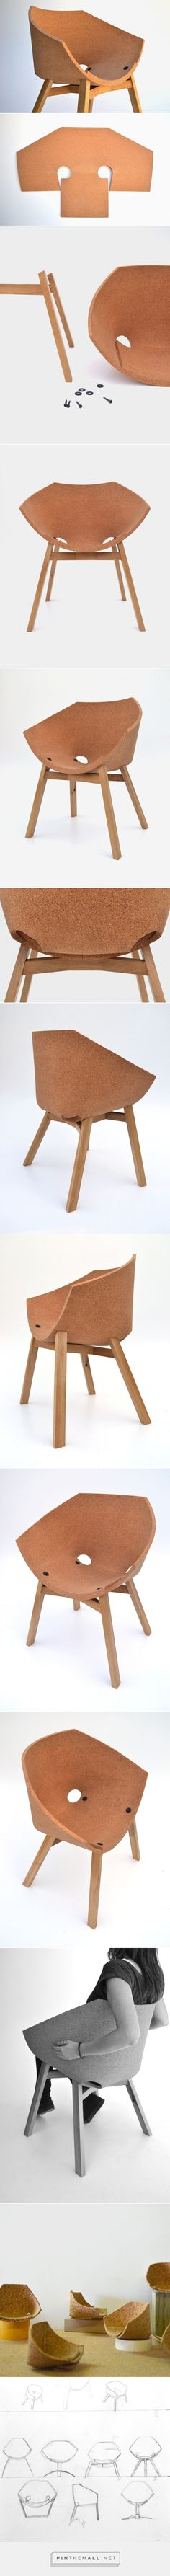 Good Corkigami Chair By Carlos Ortega Design   Design Milk   Created Via Http://